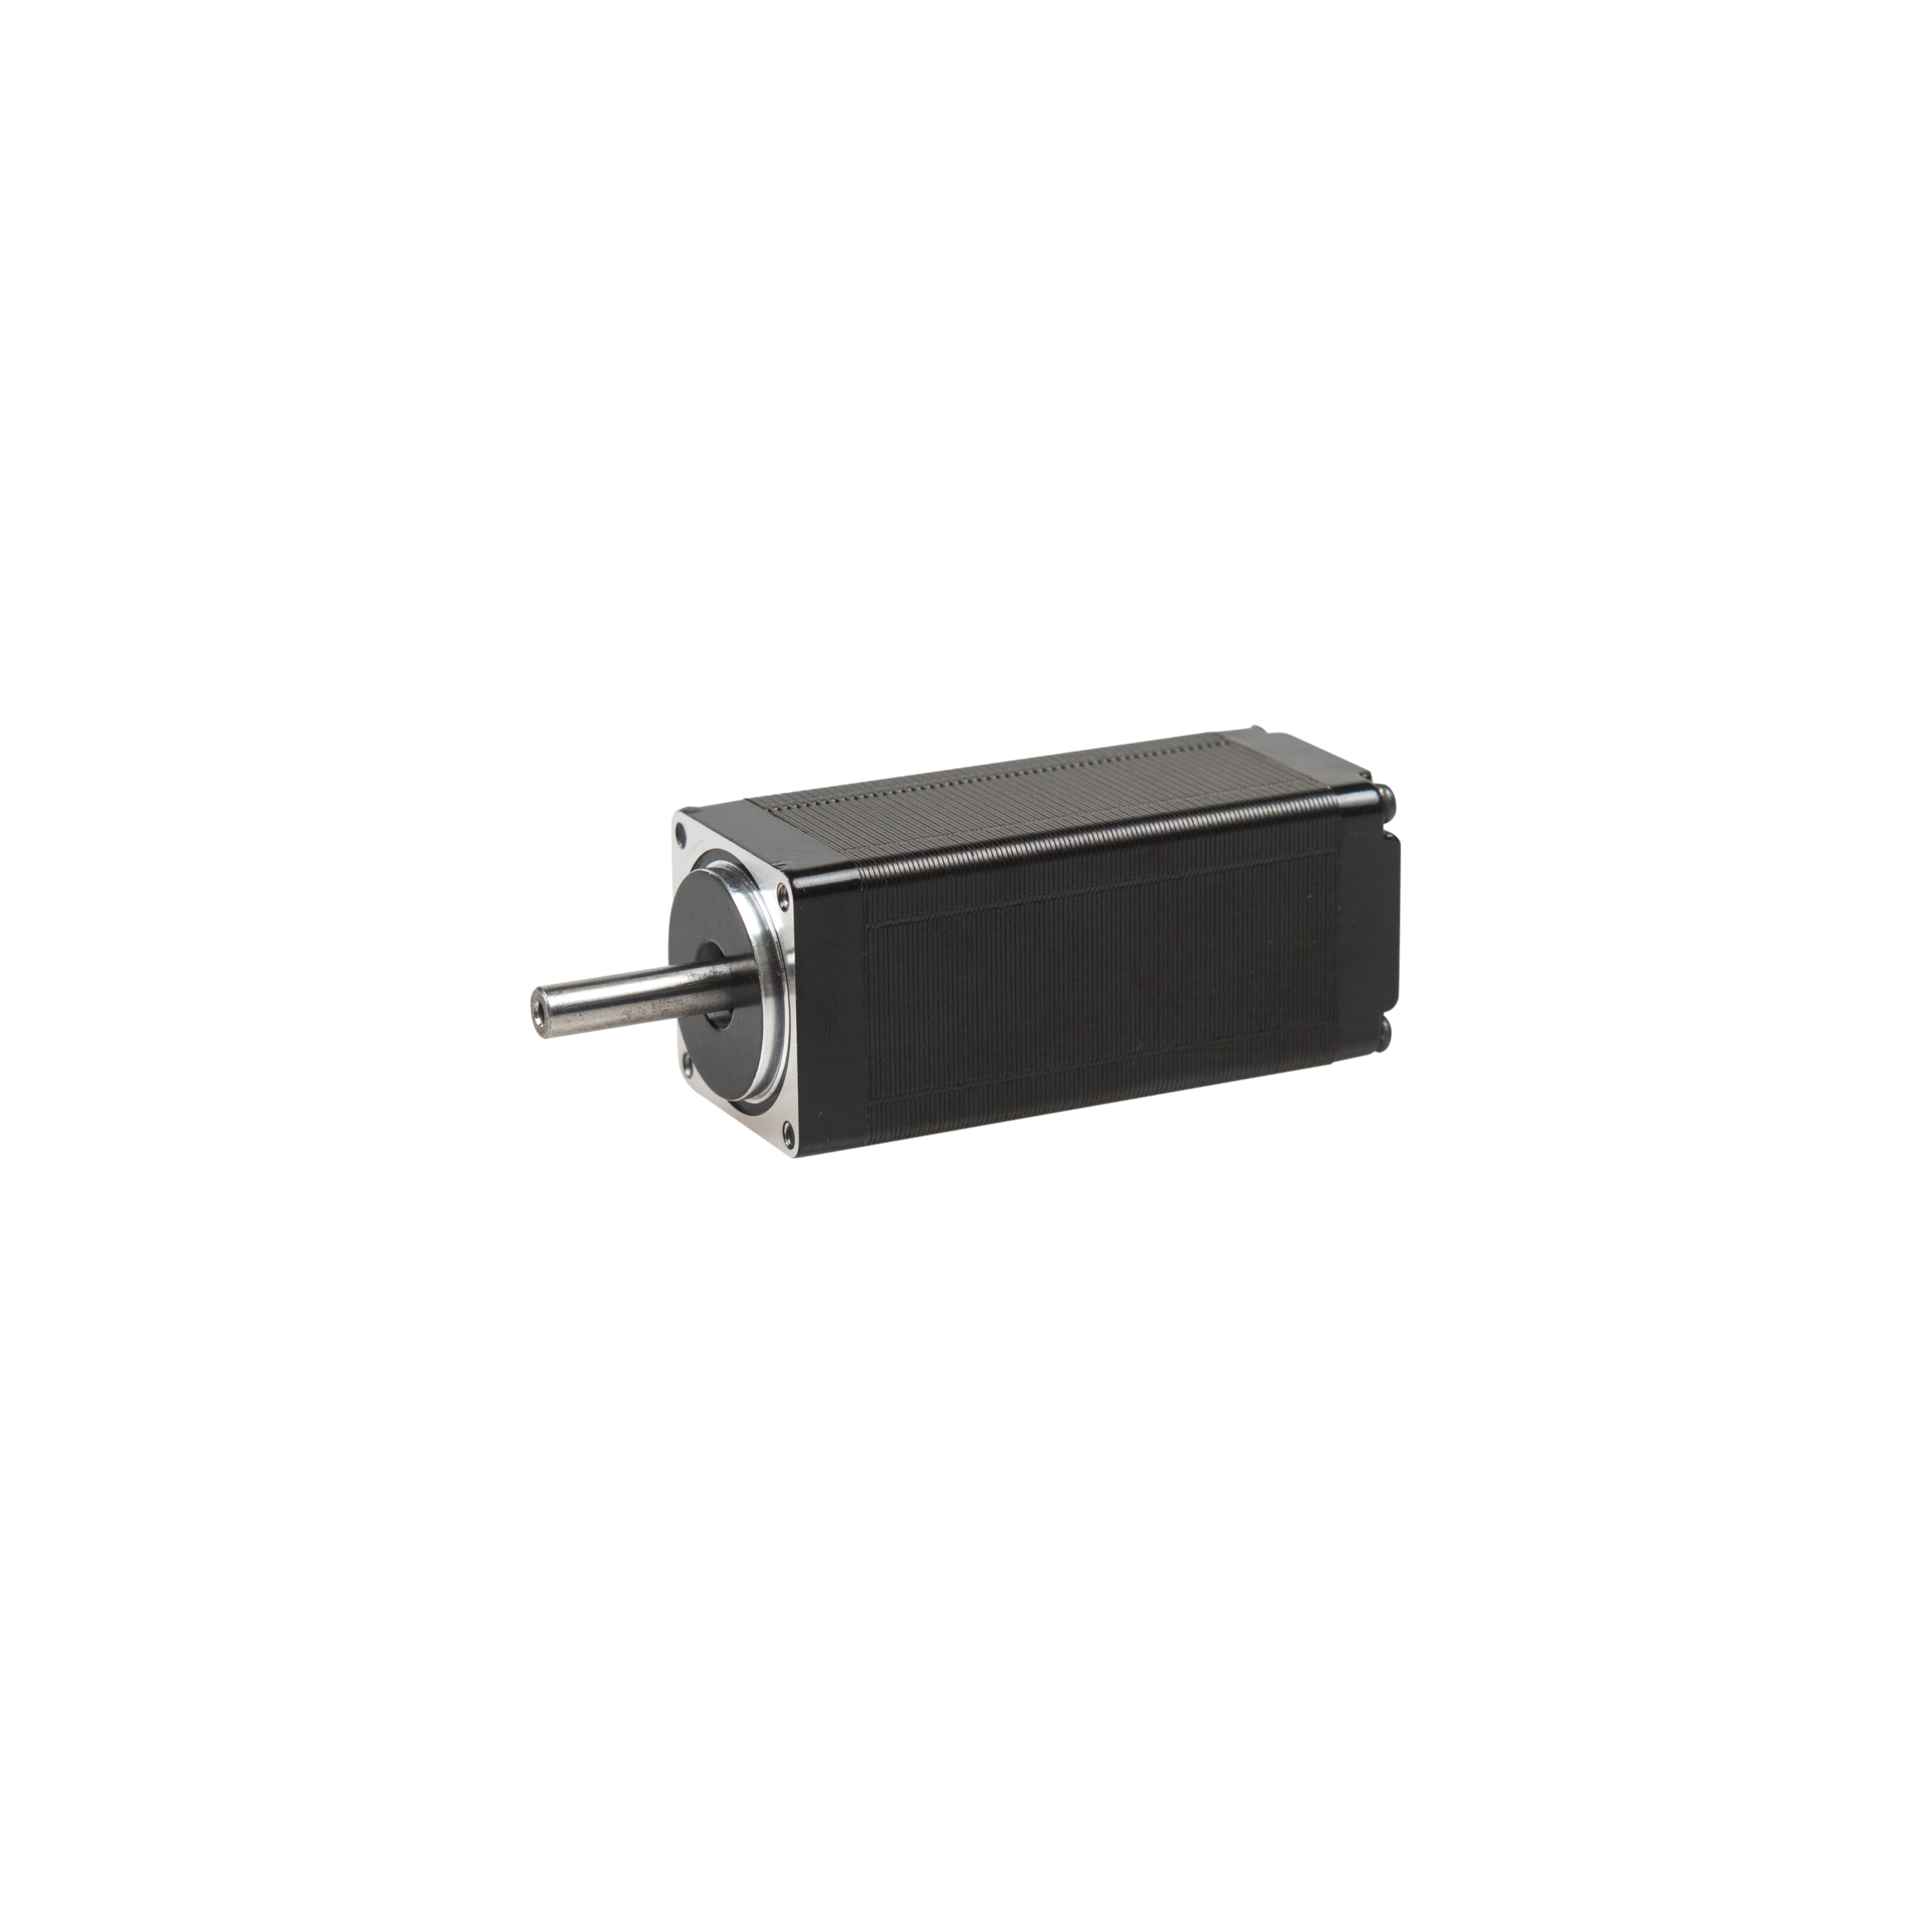 28mm Brushless DC Motor